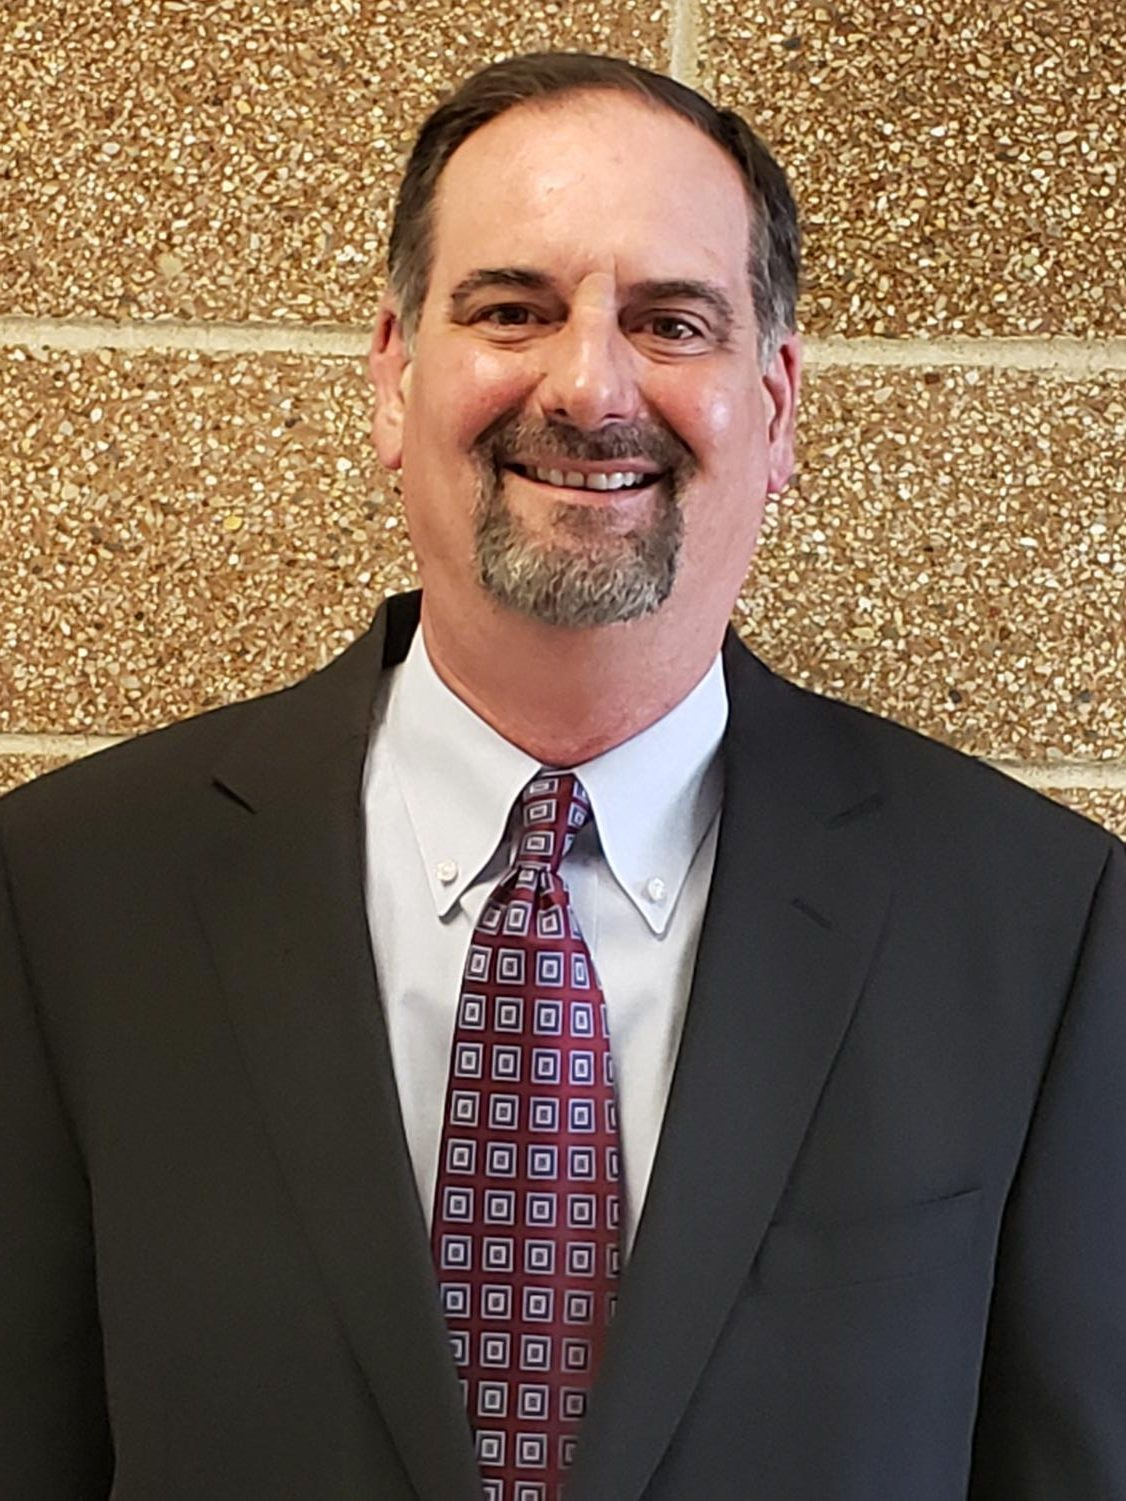 DISTRICT 202 NEWS -- D. 202 Associate Supt. will be new Superintendent in 2022-23